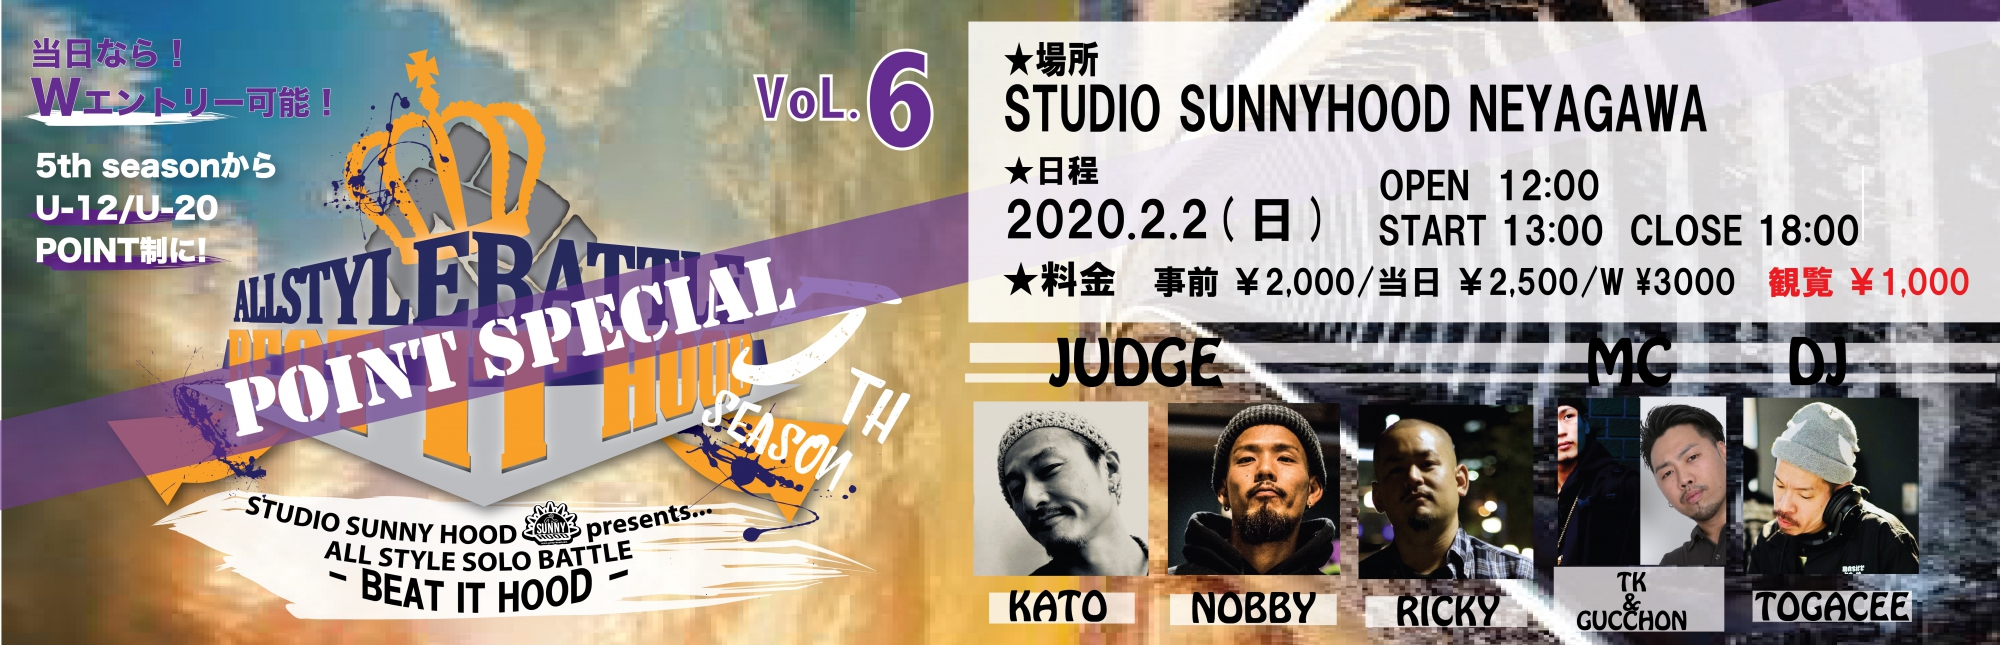 『BEAT IT HOOD 5TH SEASON Vol.6 SPECIAL✨』 開催決定!!!